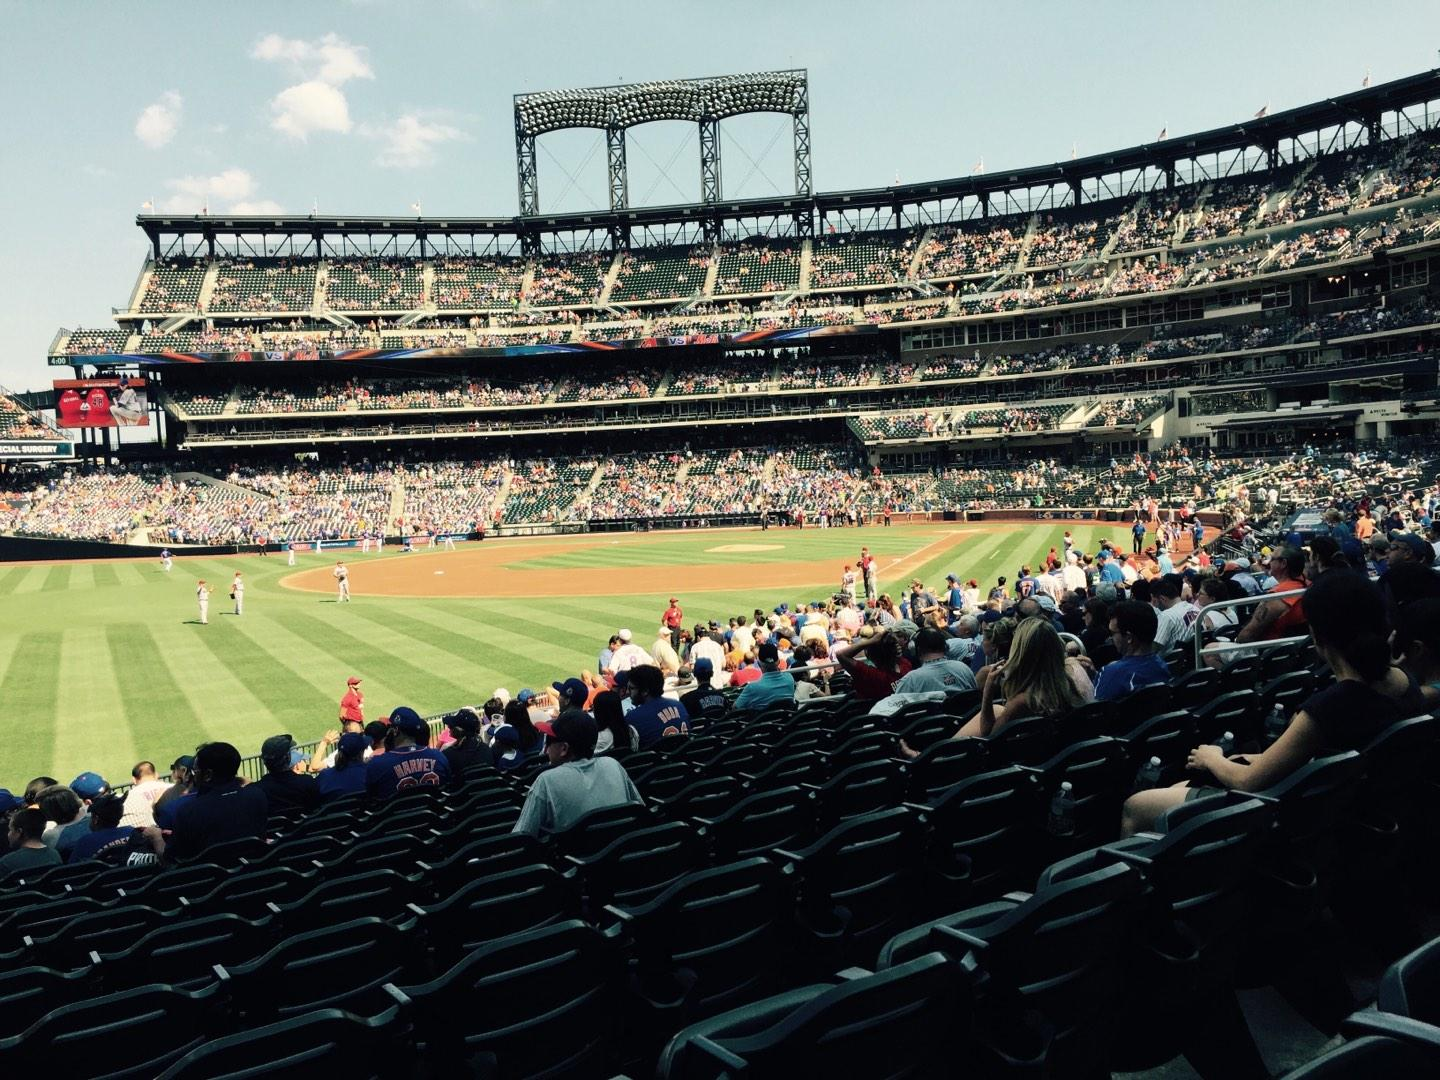 Citi Field Section 129 Row 20 Seat 16